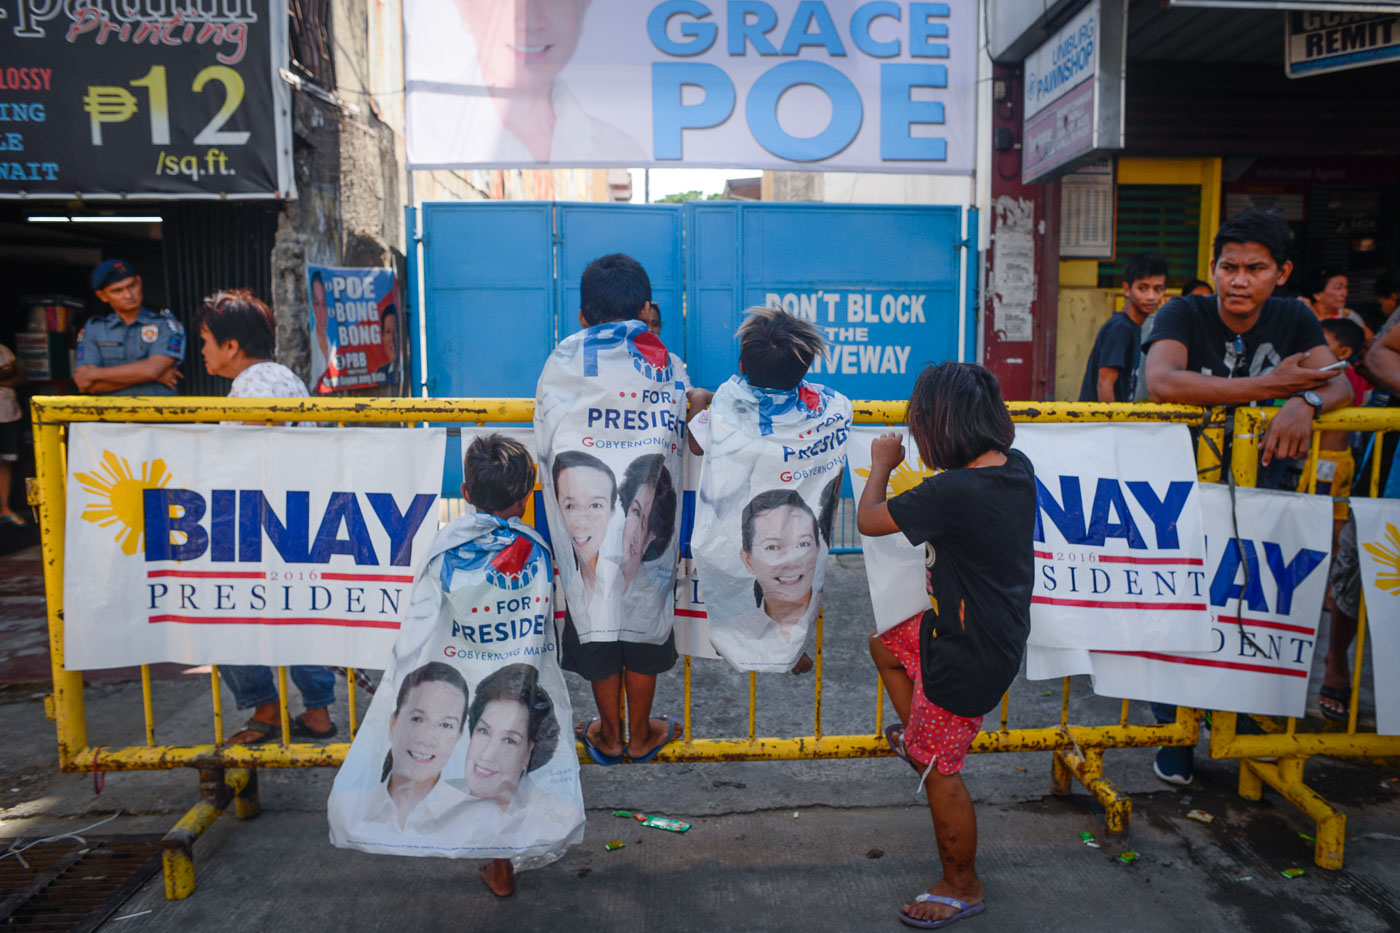 PLAYTIME. Children play with campaign materials that can be found almost everywhere in Dagupan City. All photos by LeAnne Jazul/Rappler